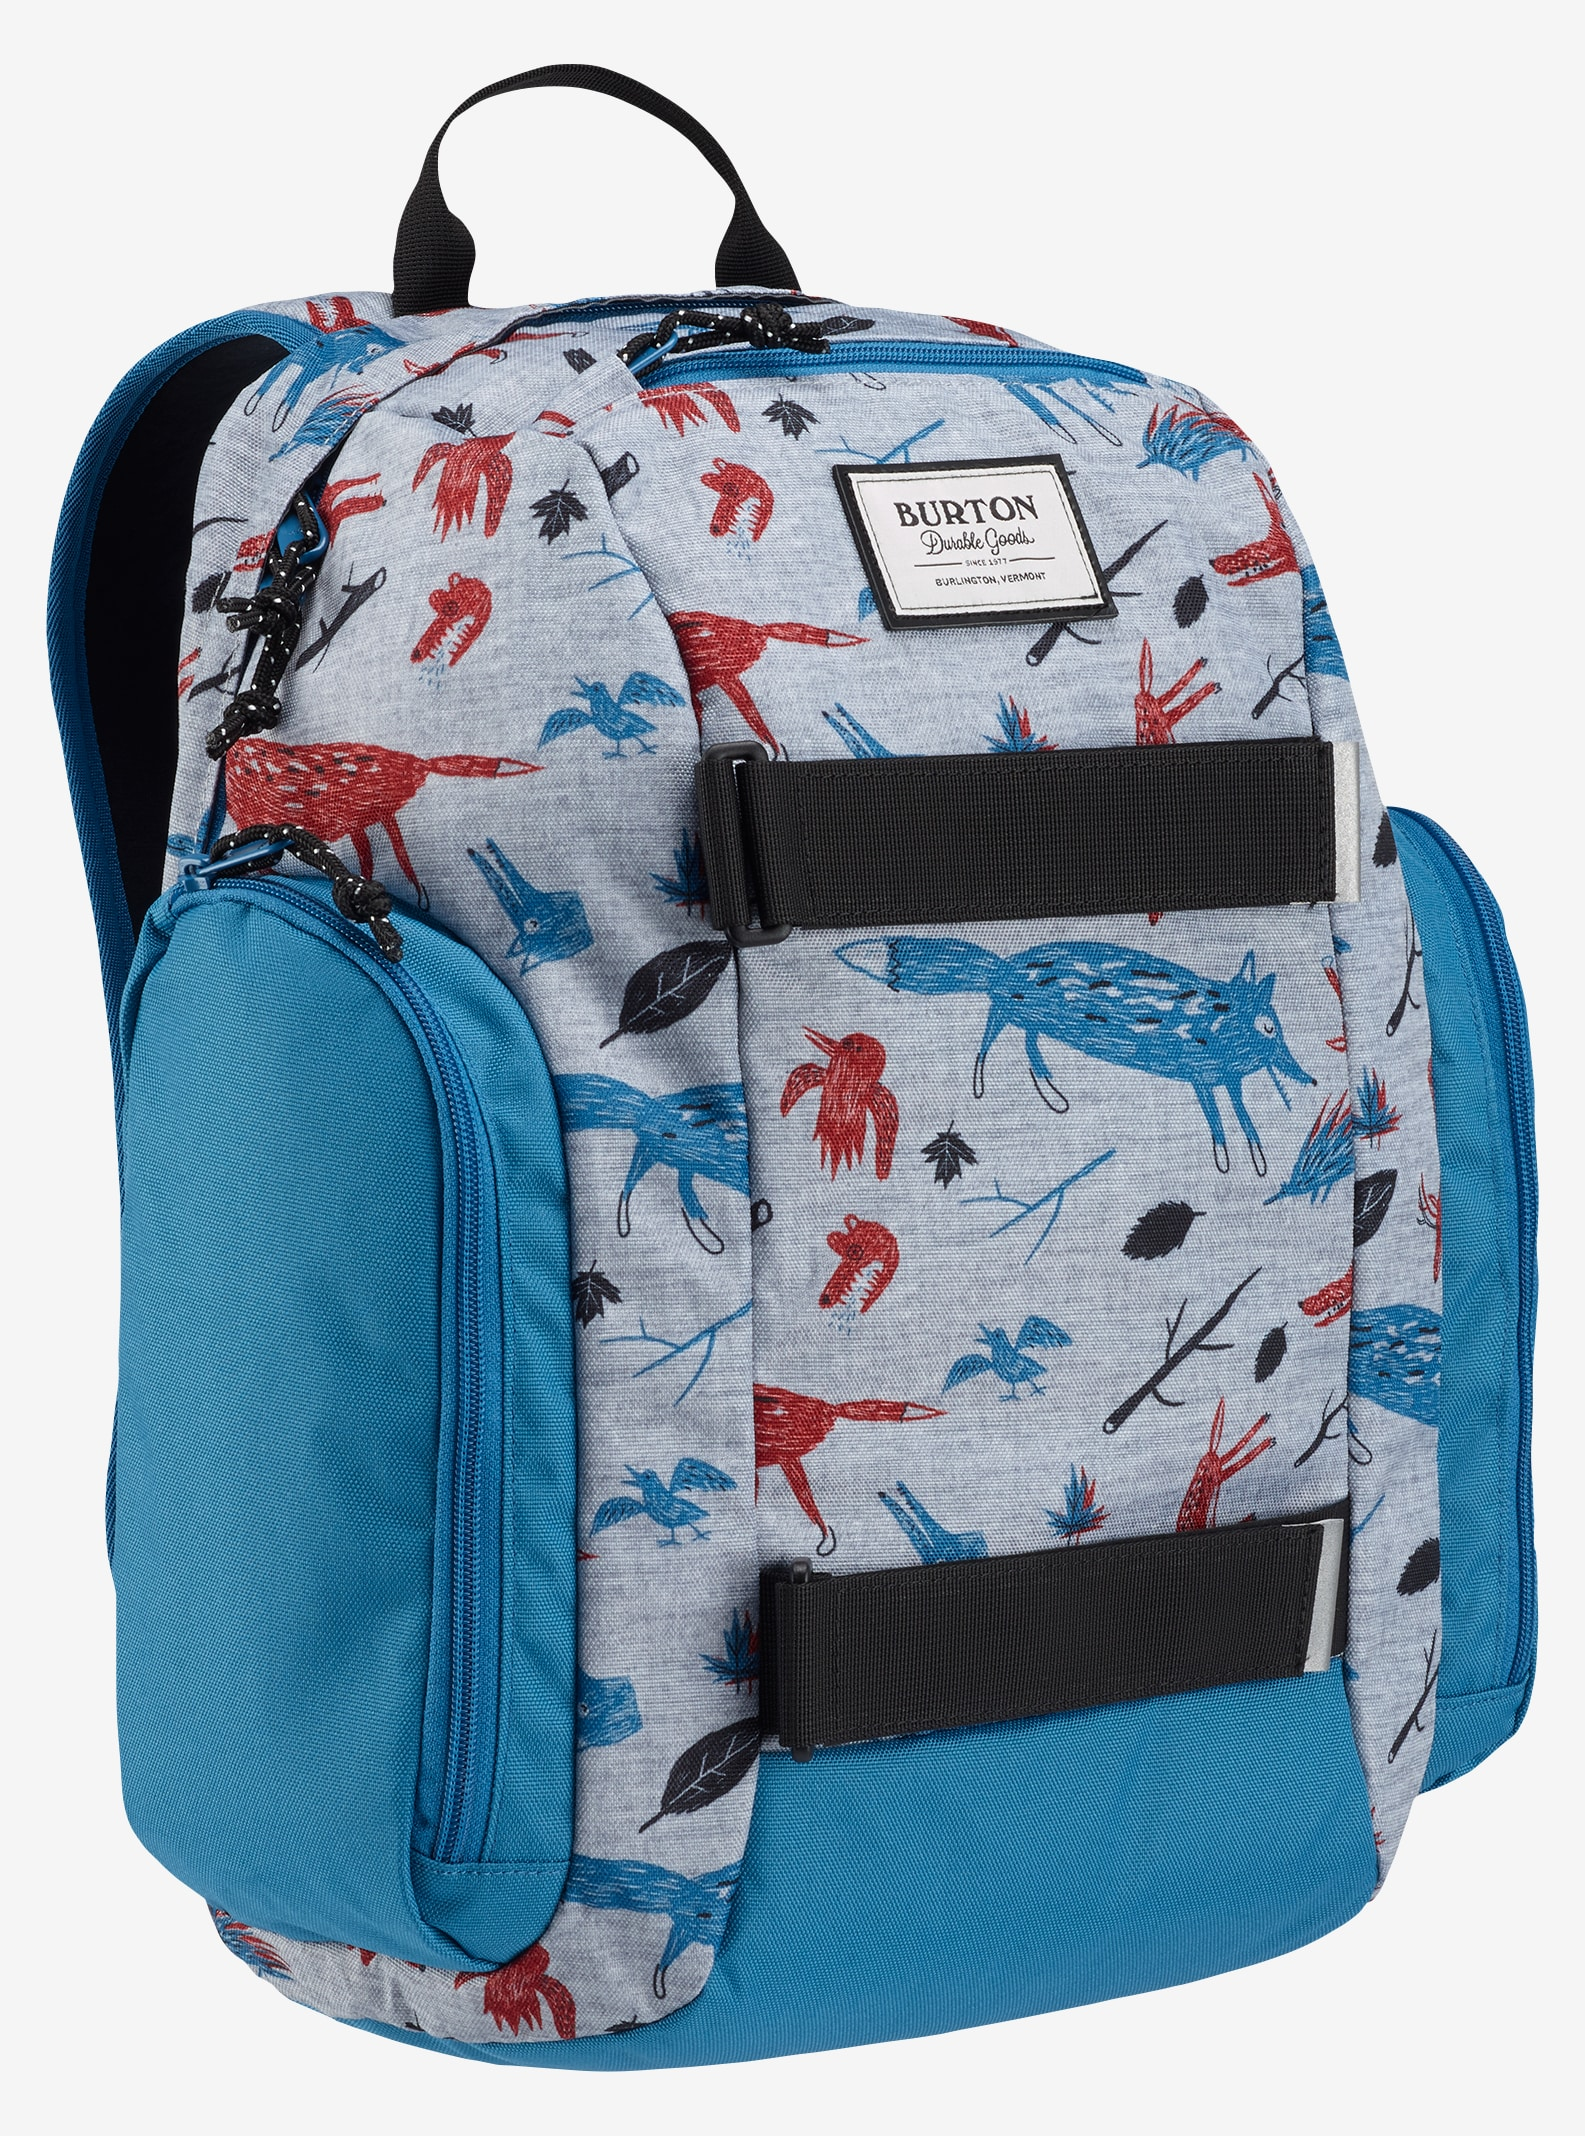 Burton Kids' Metalhead Backpack shown in Big Bad Wolf Print